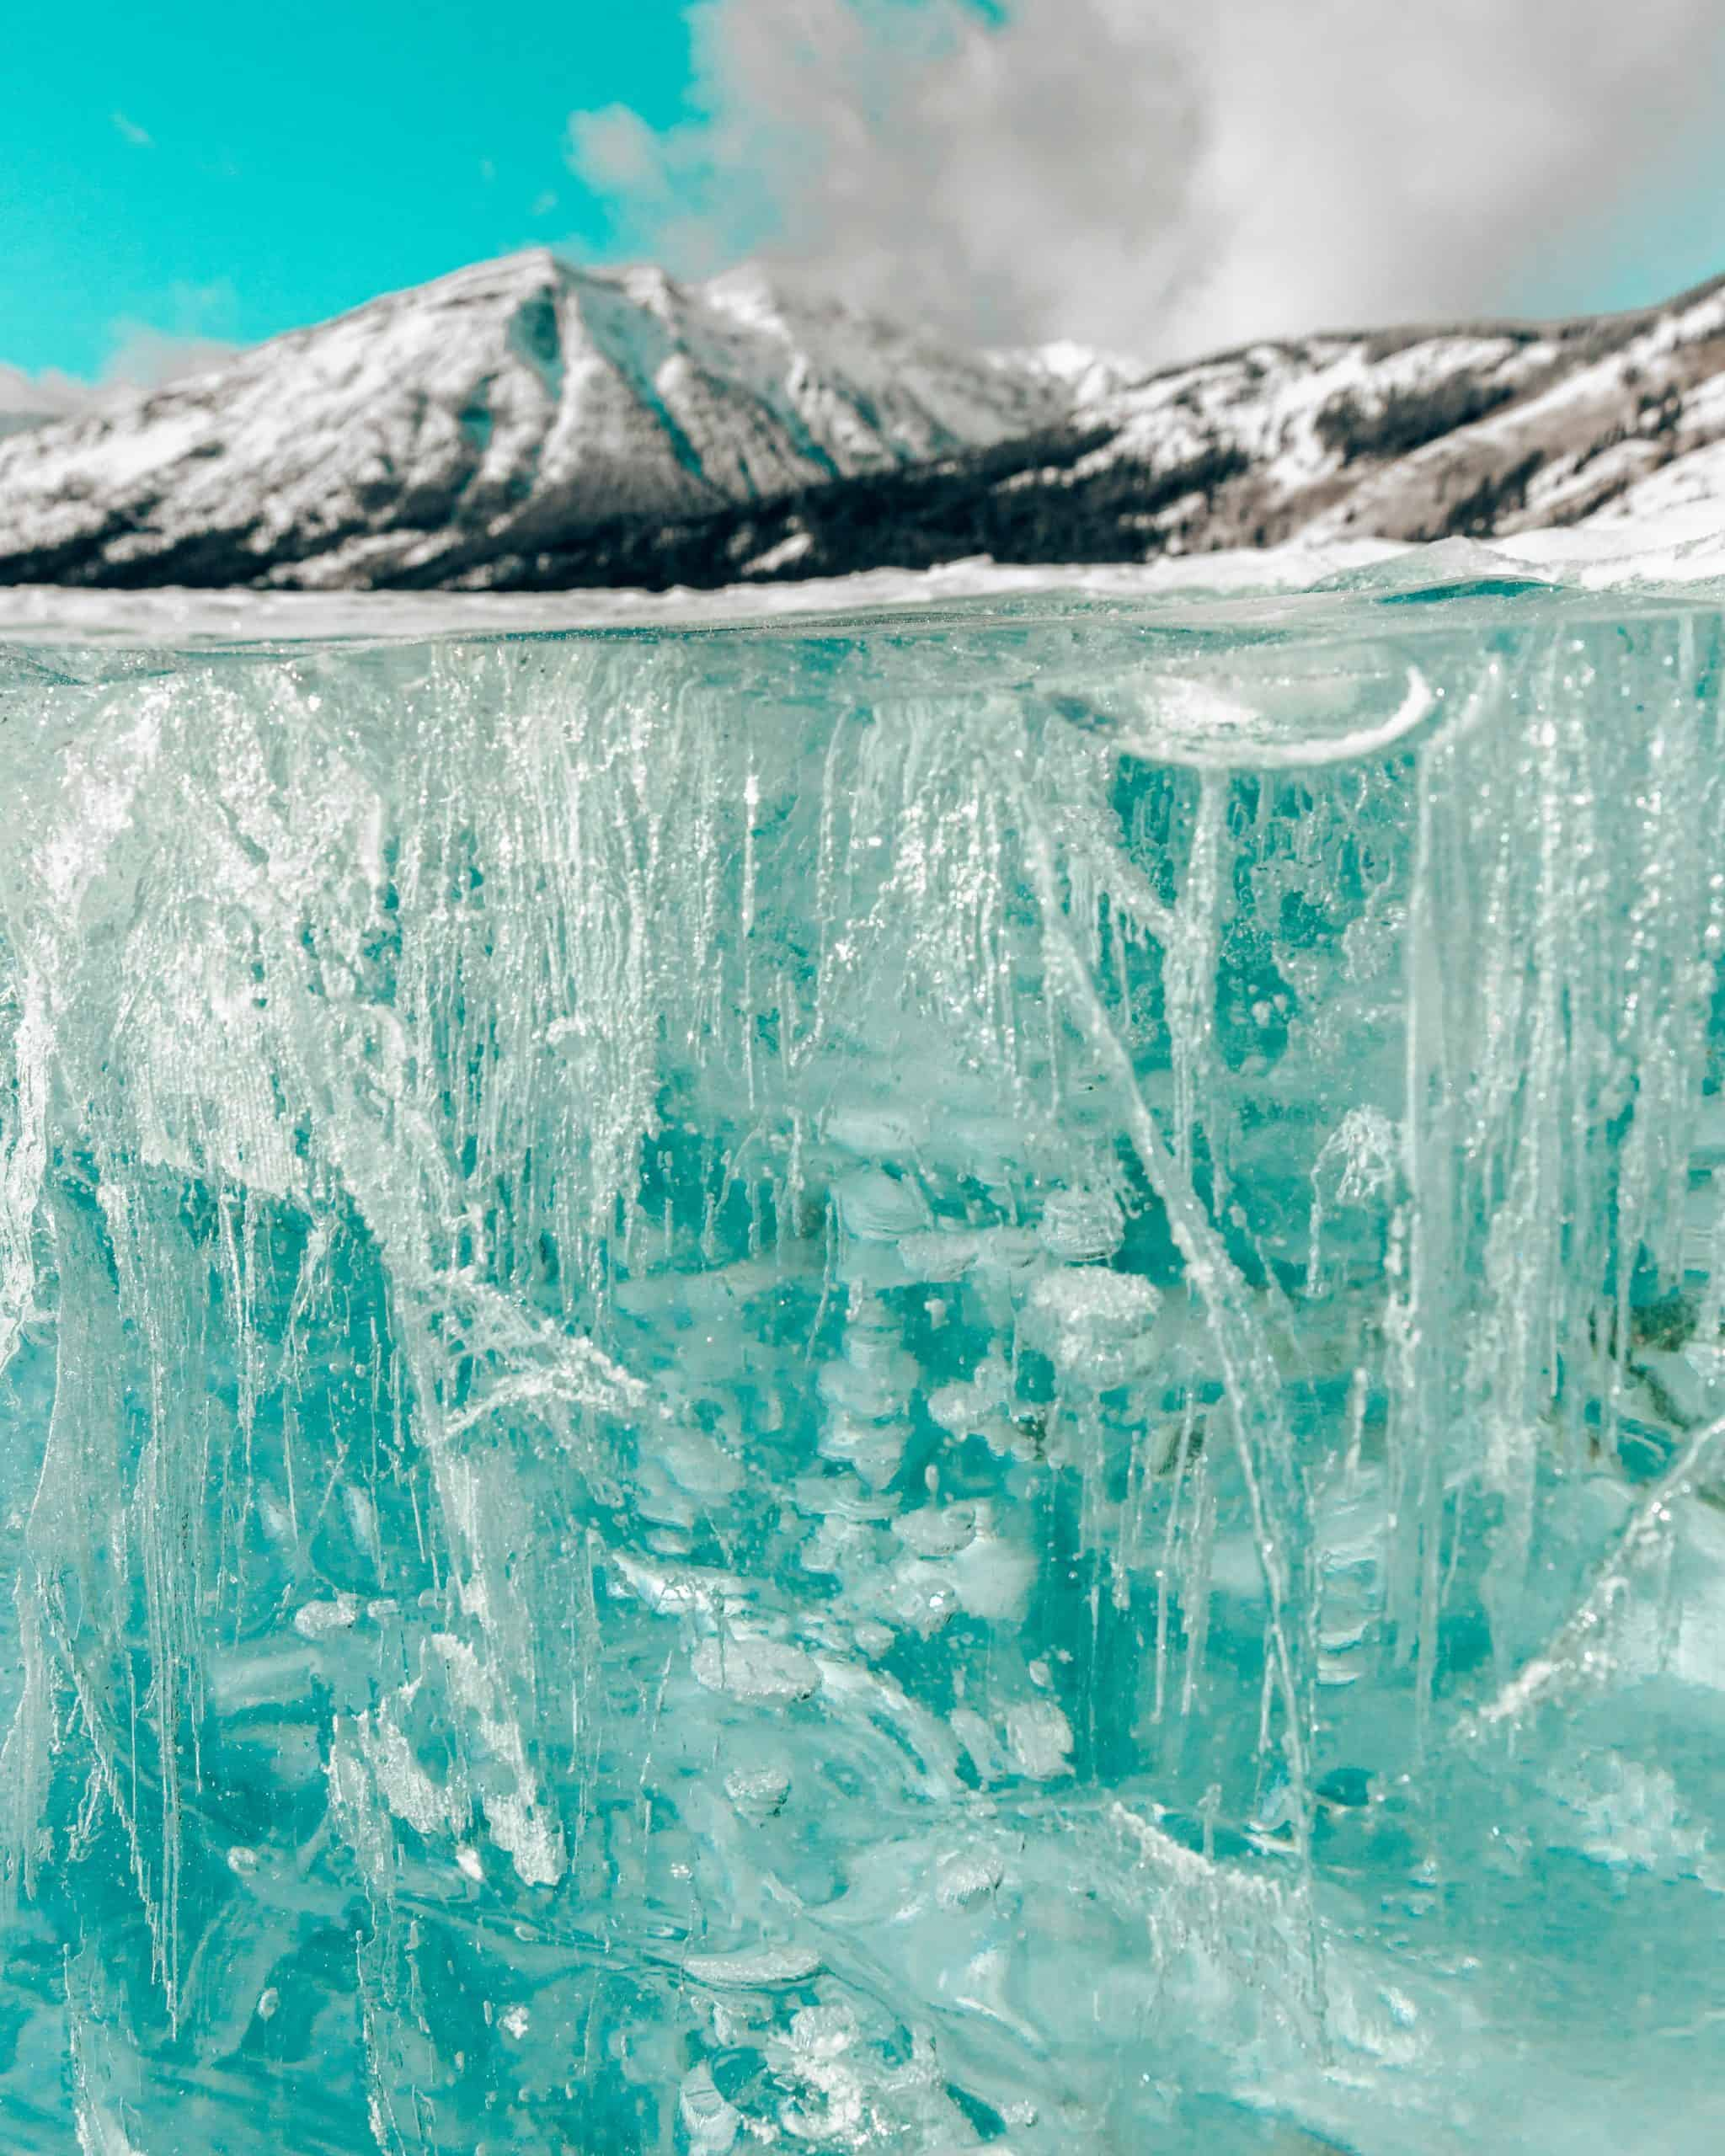 Frozen Methane Bubbles in Ice Sheet at Abraham Lake Canada - Best Things to do in Jasper in Winter